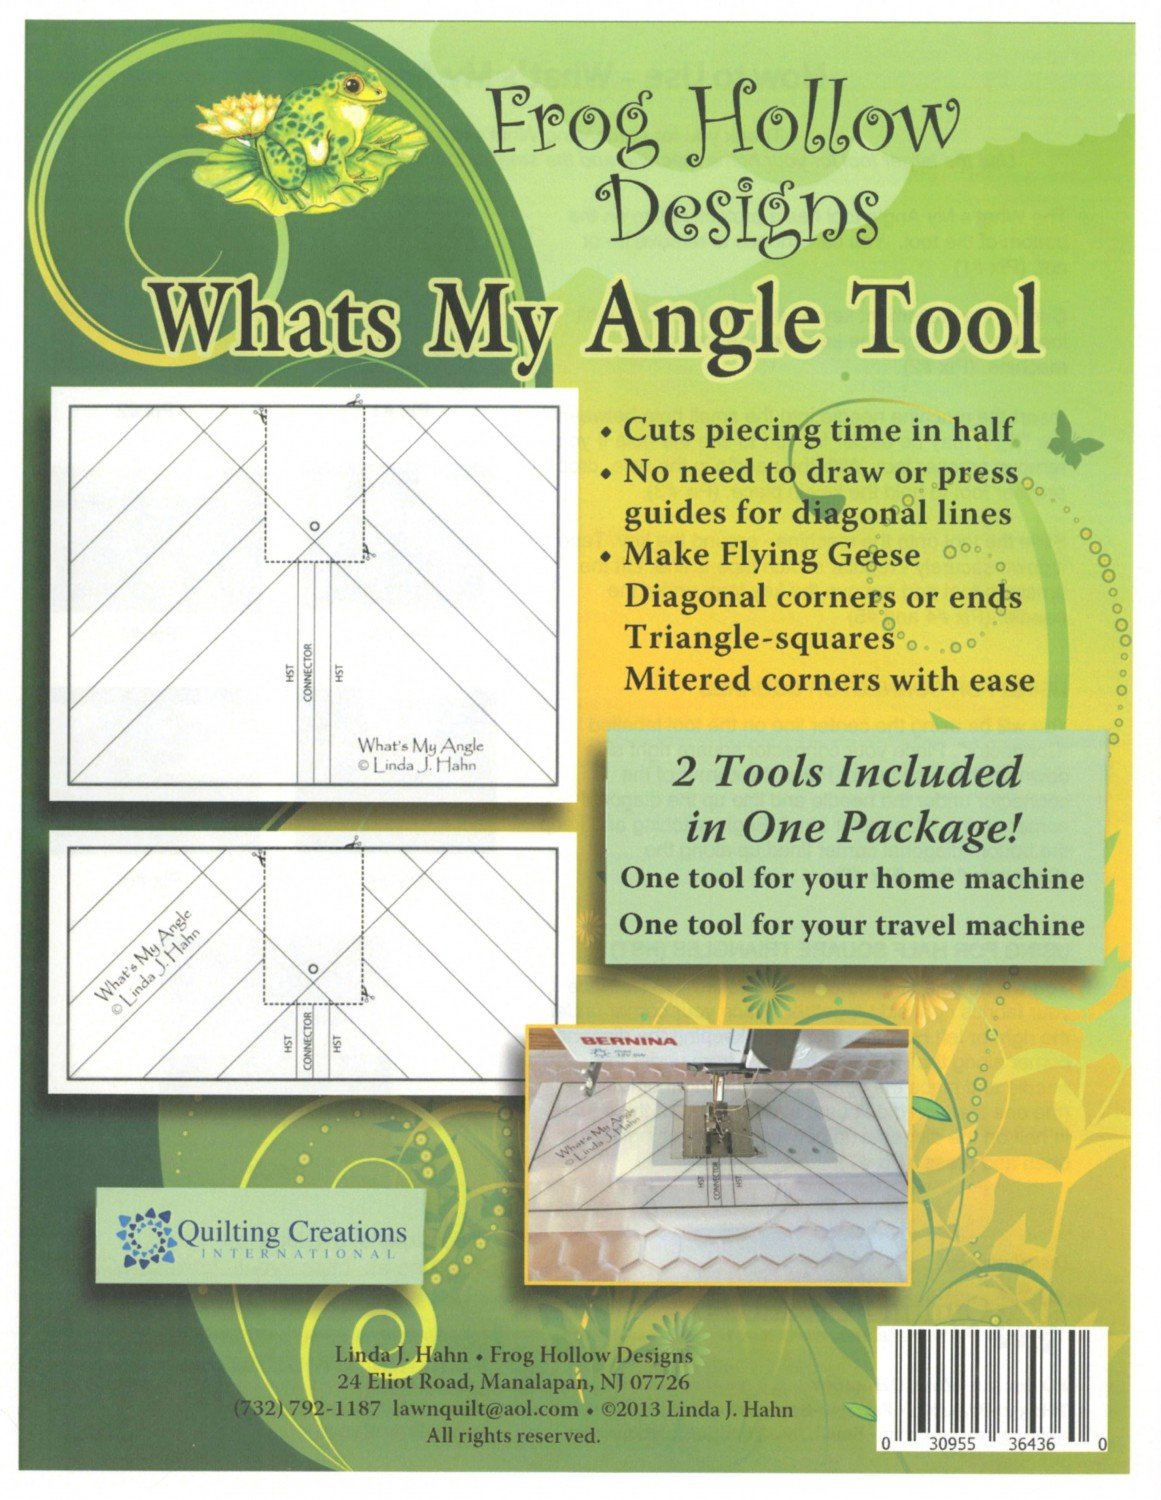 *Whats My Angle Tool - LH1003